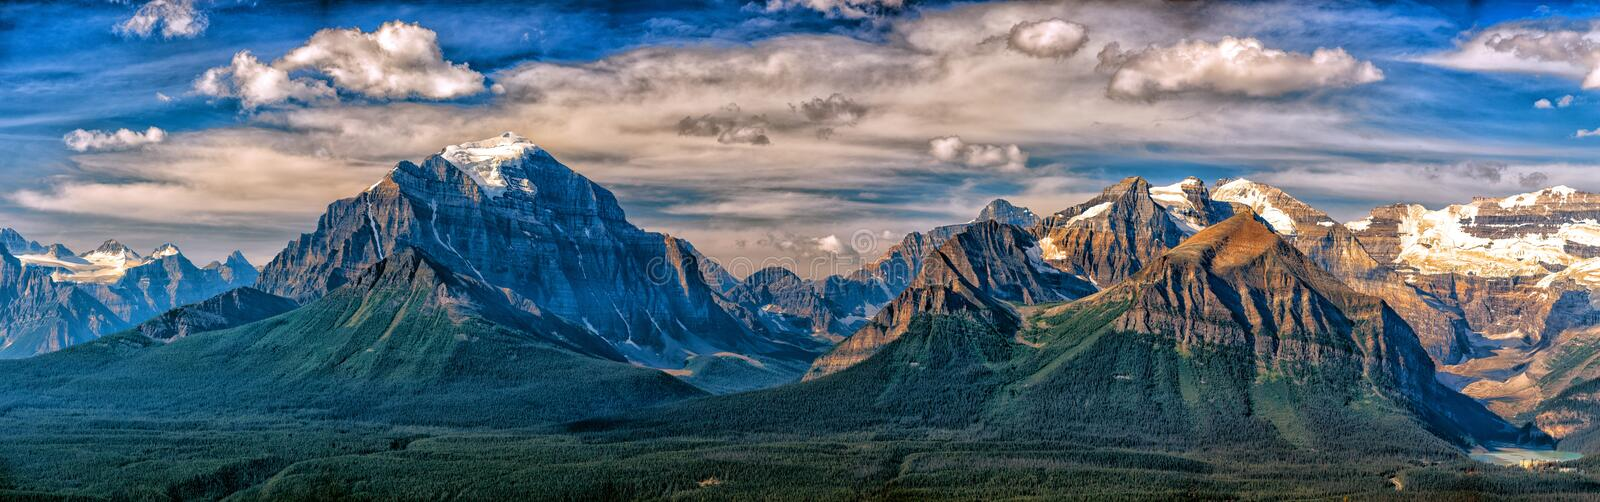 Canada Rocky Mountains Panorama landscape view stock photos